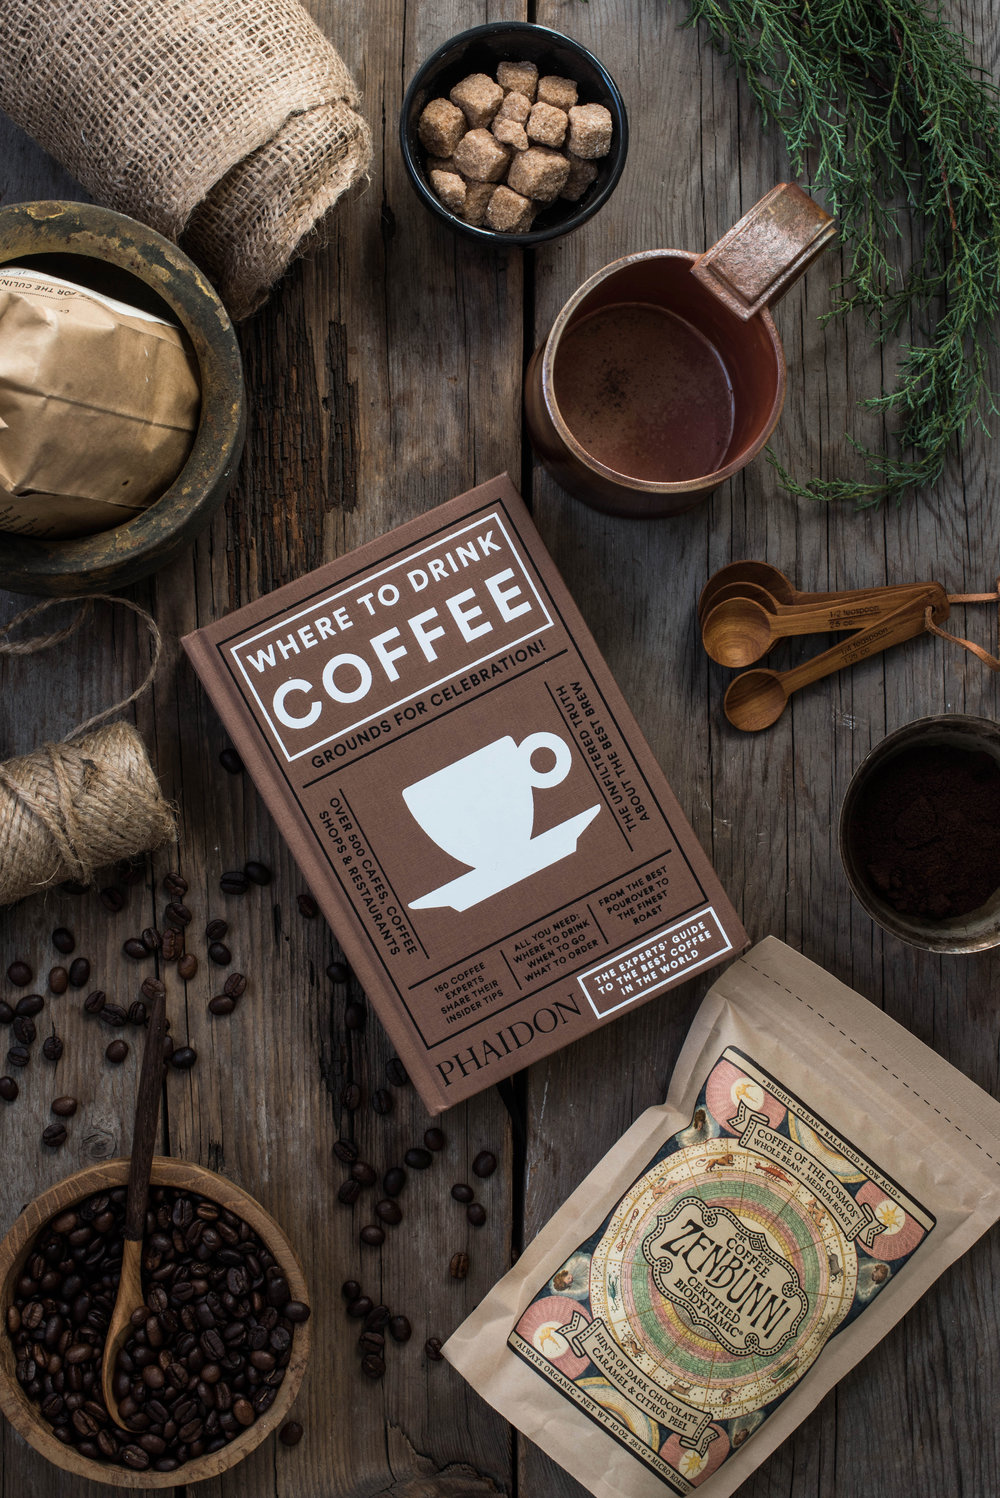 ROSE & IVY Journal The Gift Guide for the Caffeine Lover Where to Drink Coffee Phaidon, Mondays Mug, Zenbunni Biodynamic Coffee